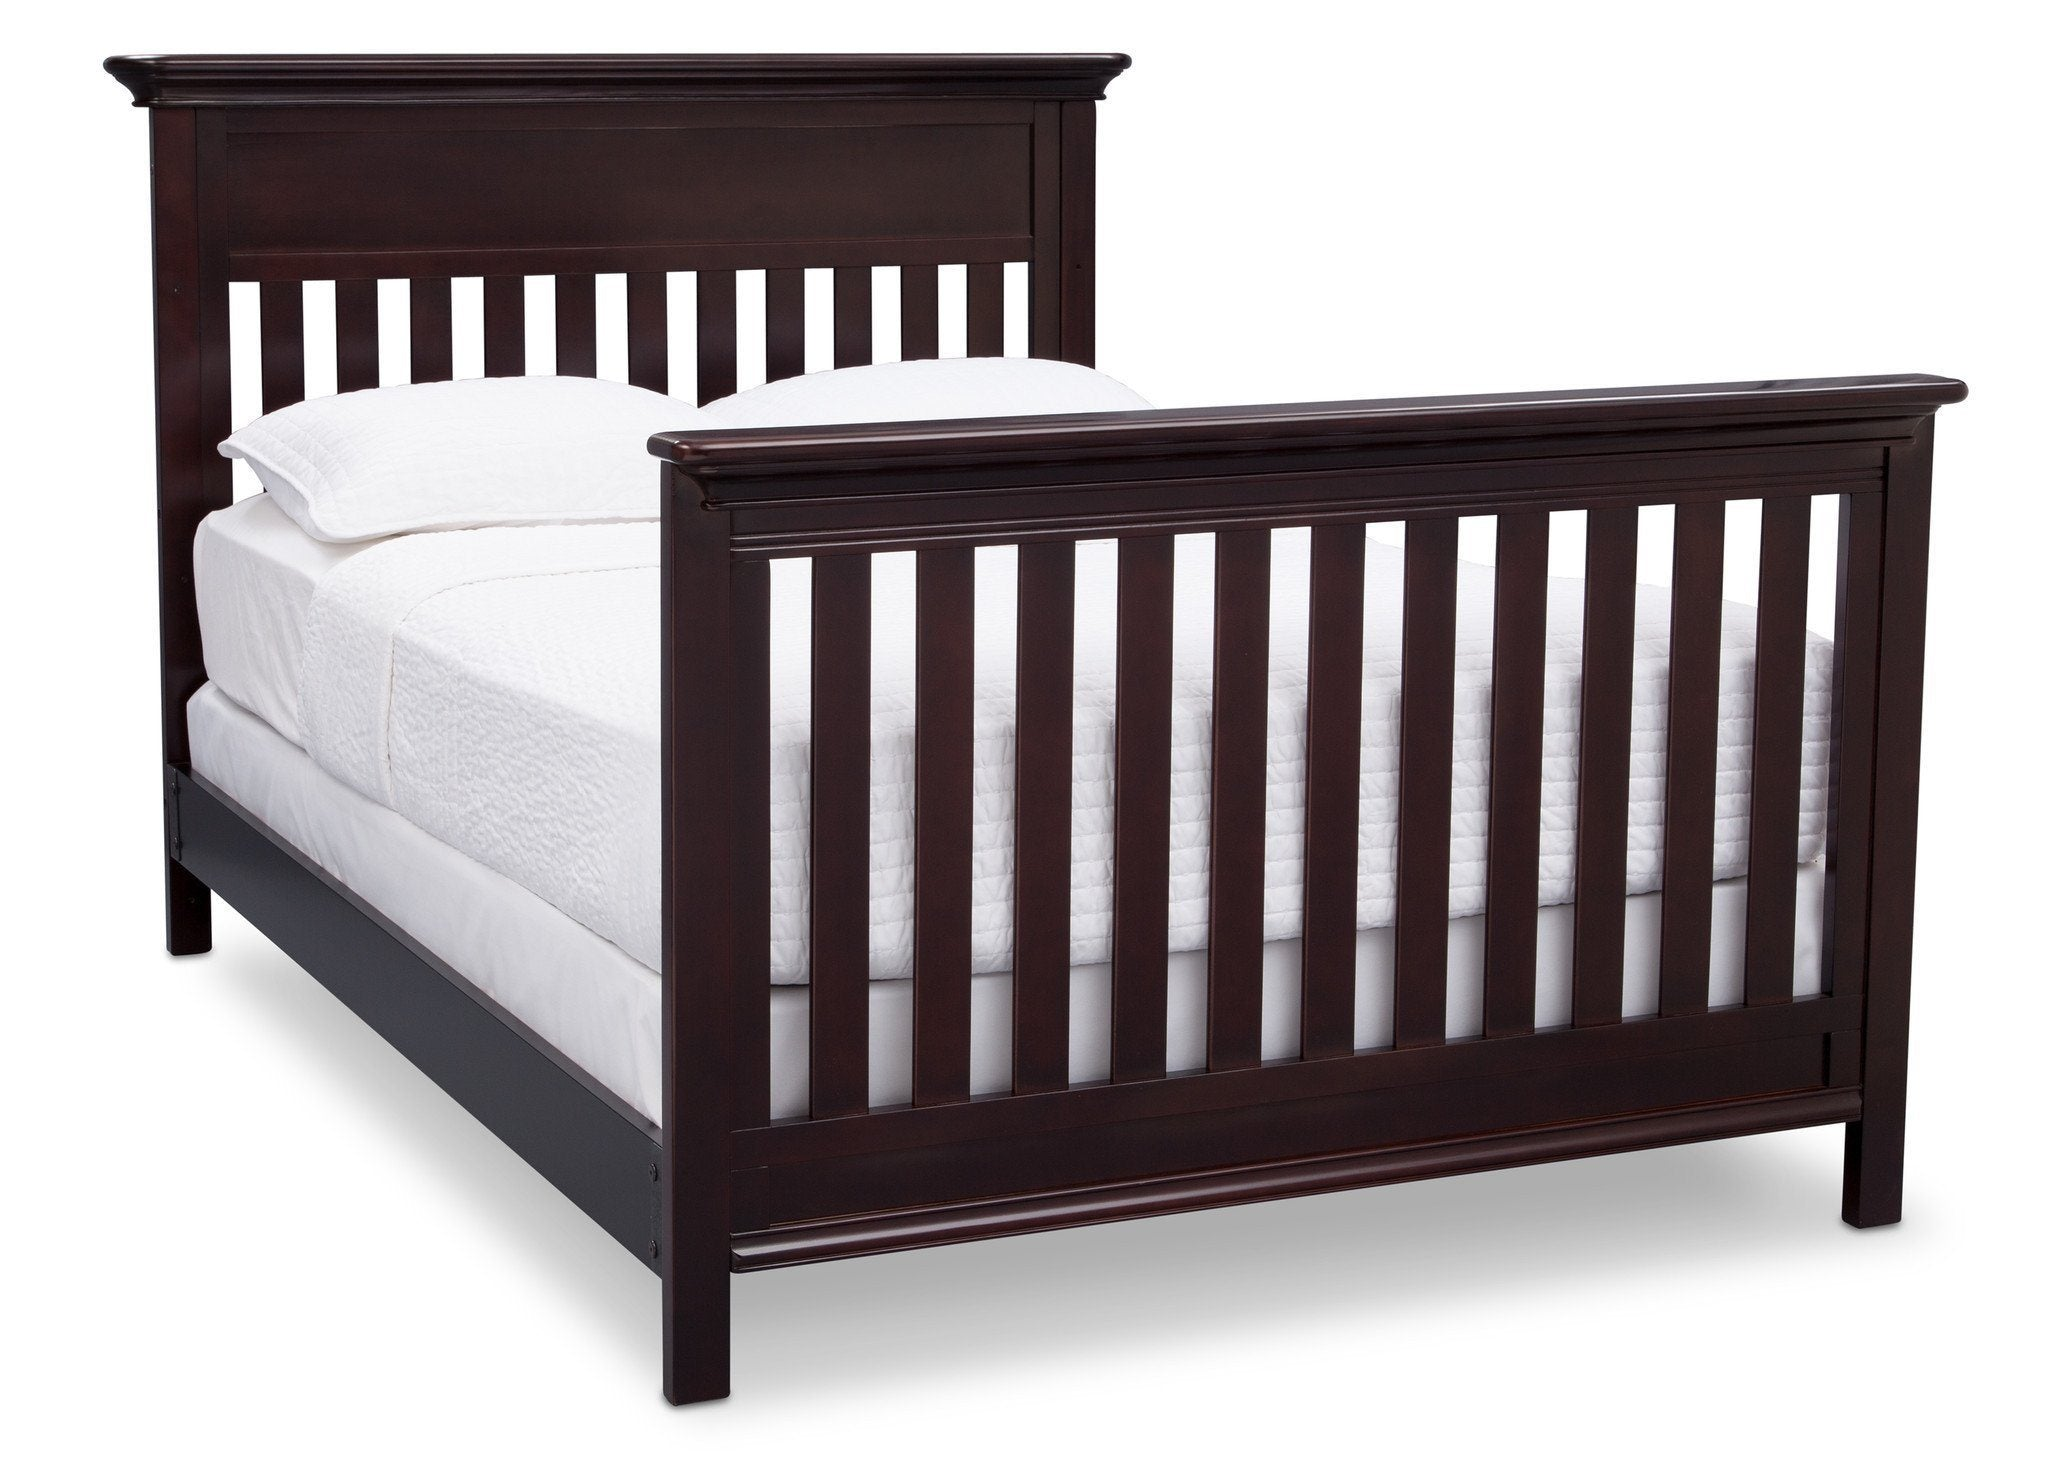 Serta Dark Chocolate (207) Fernwood 4-in-1 Crib, Side View with Full Size Platform Bed Kit (for 4-in-1 Cribs) 700850 c7c